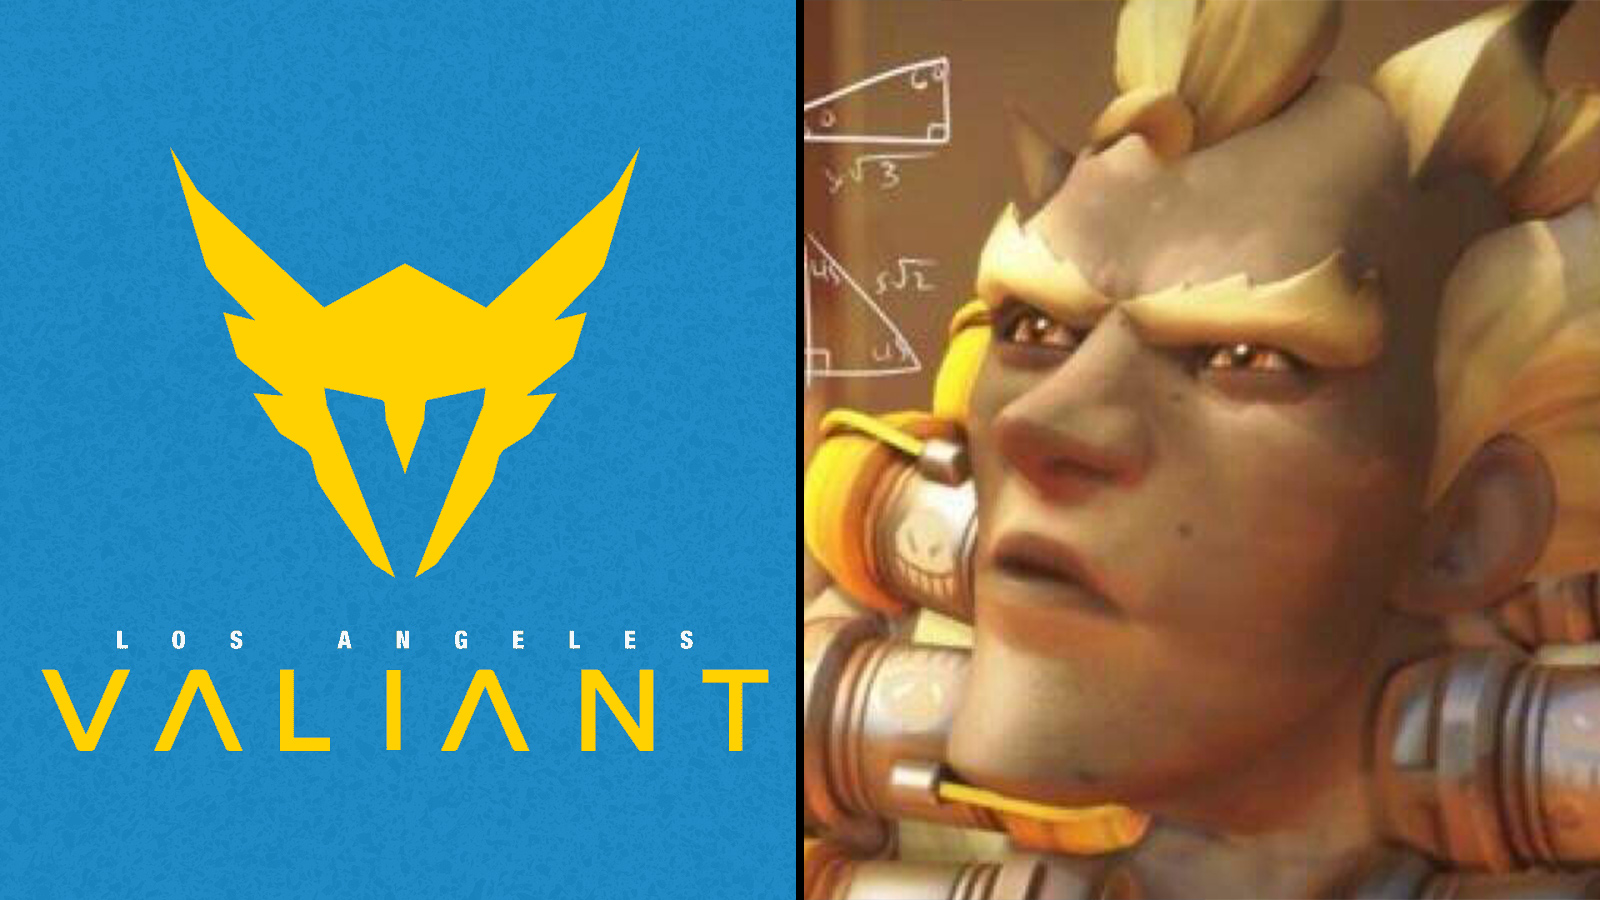 The Overwatch League/Blizzard Entertainment